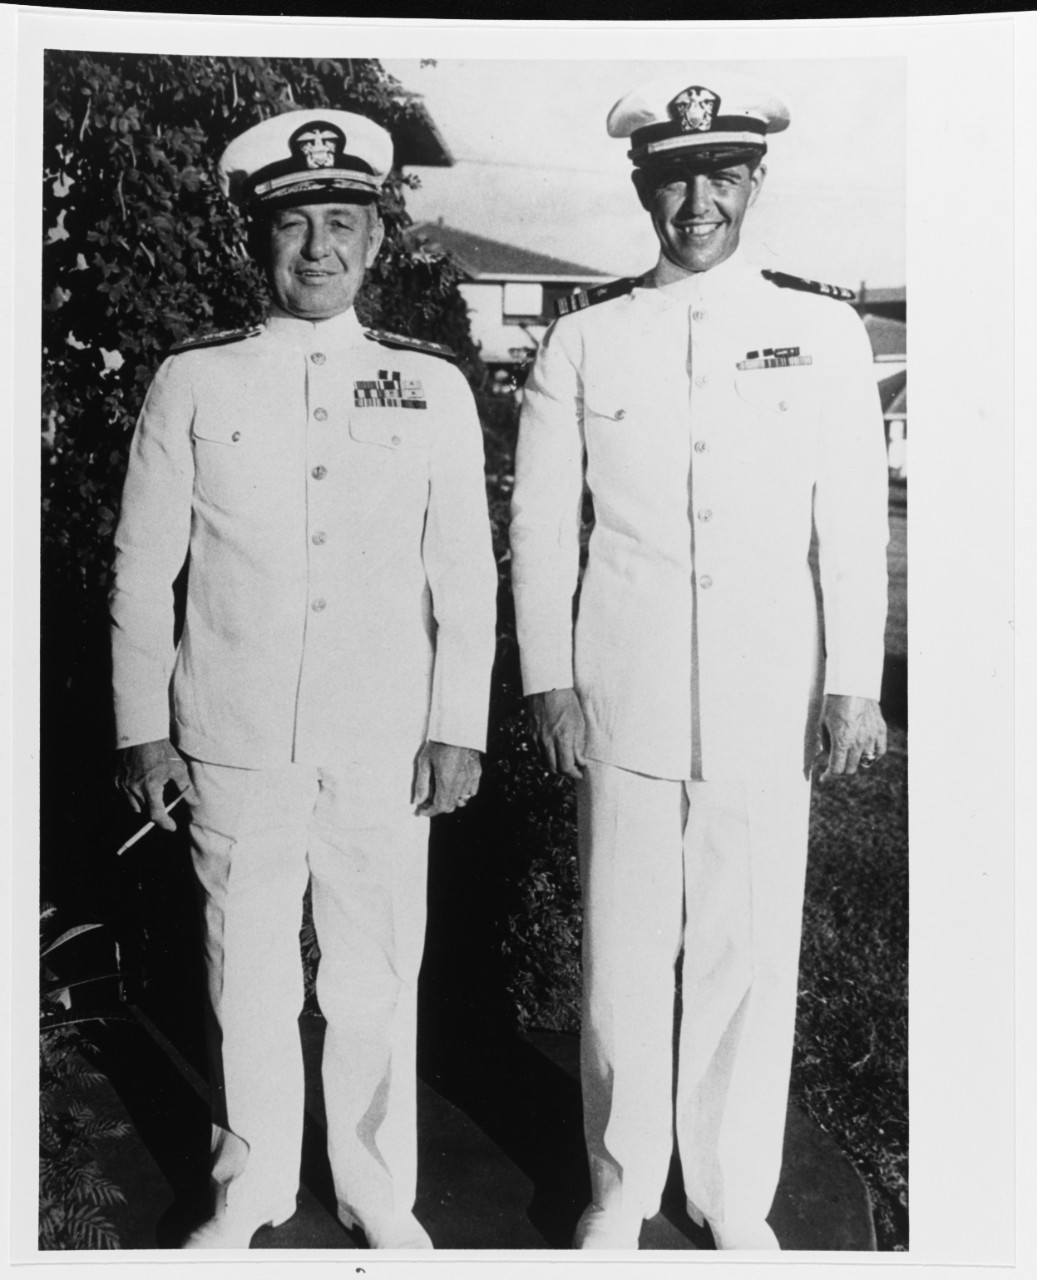 Rear Admiral James L. Kauffman, with his son, Lieutenant Commander Draper L. Kauffman, USNR